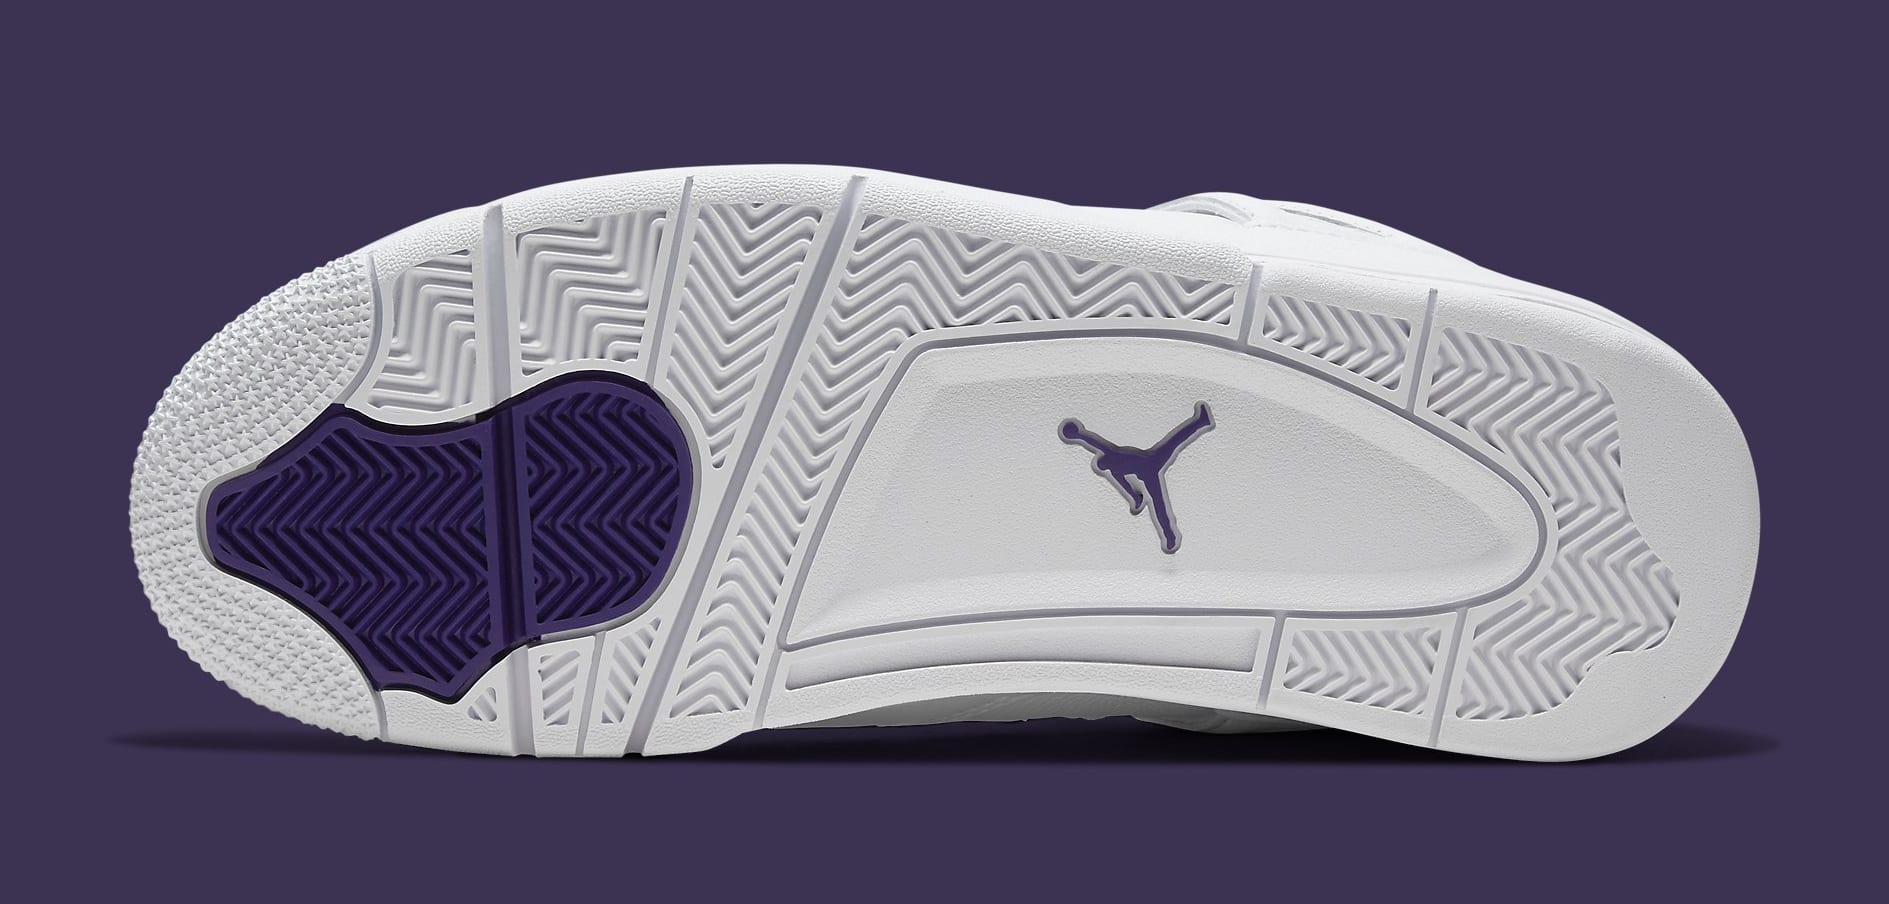 Air Jordan 4 Retro 'Metallic Purple' CT8527-115 Outsole